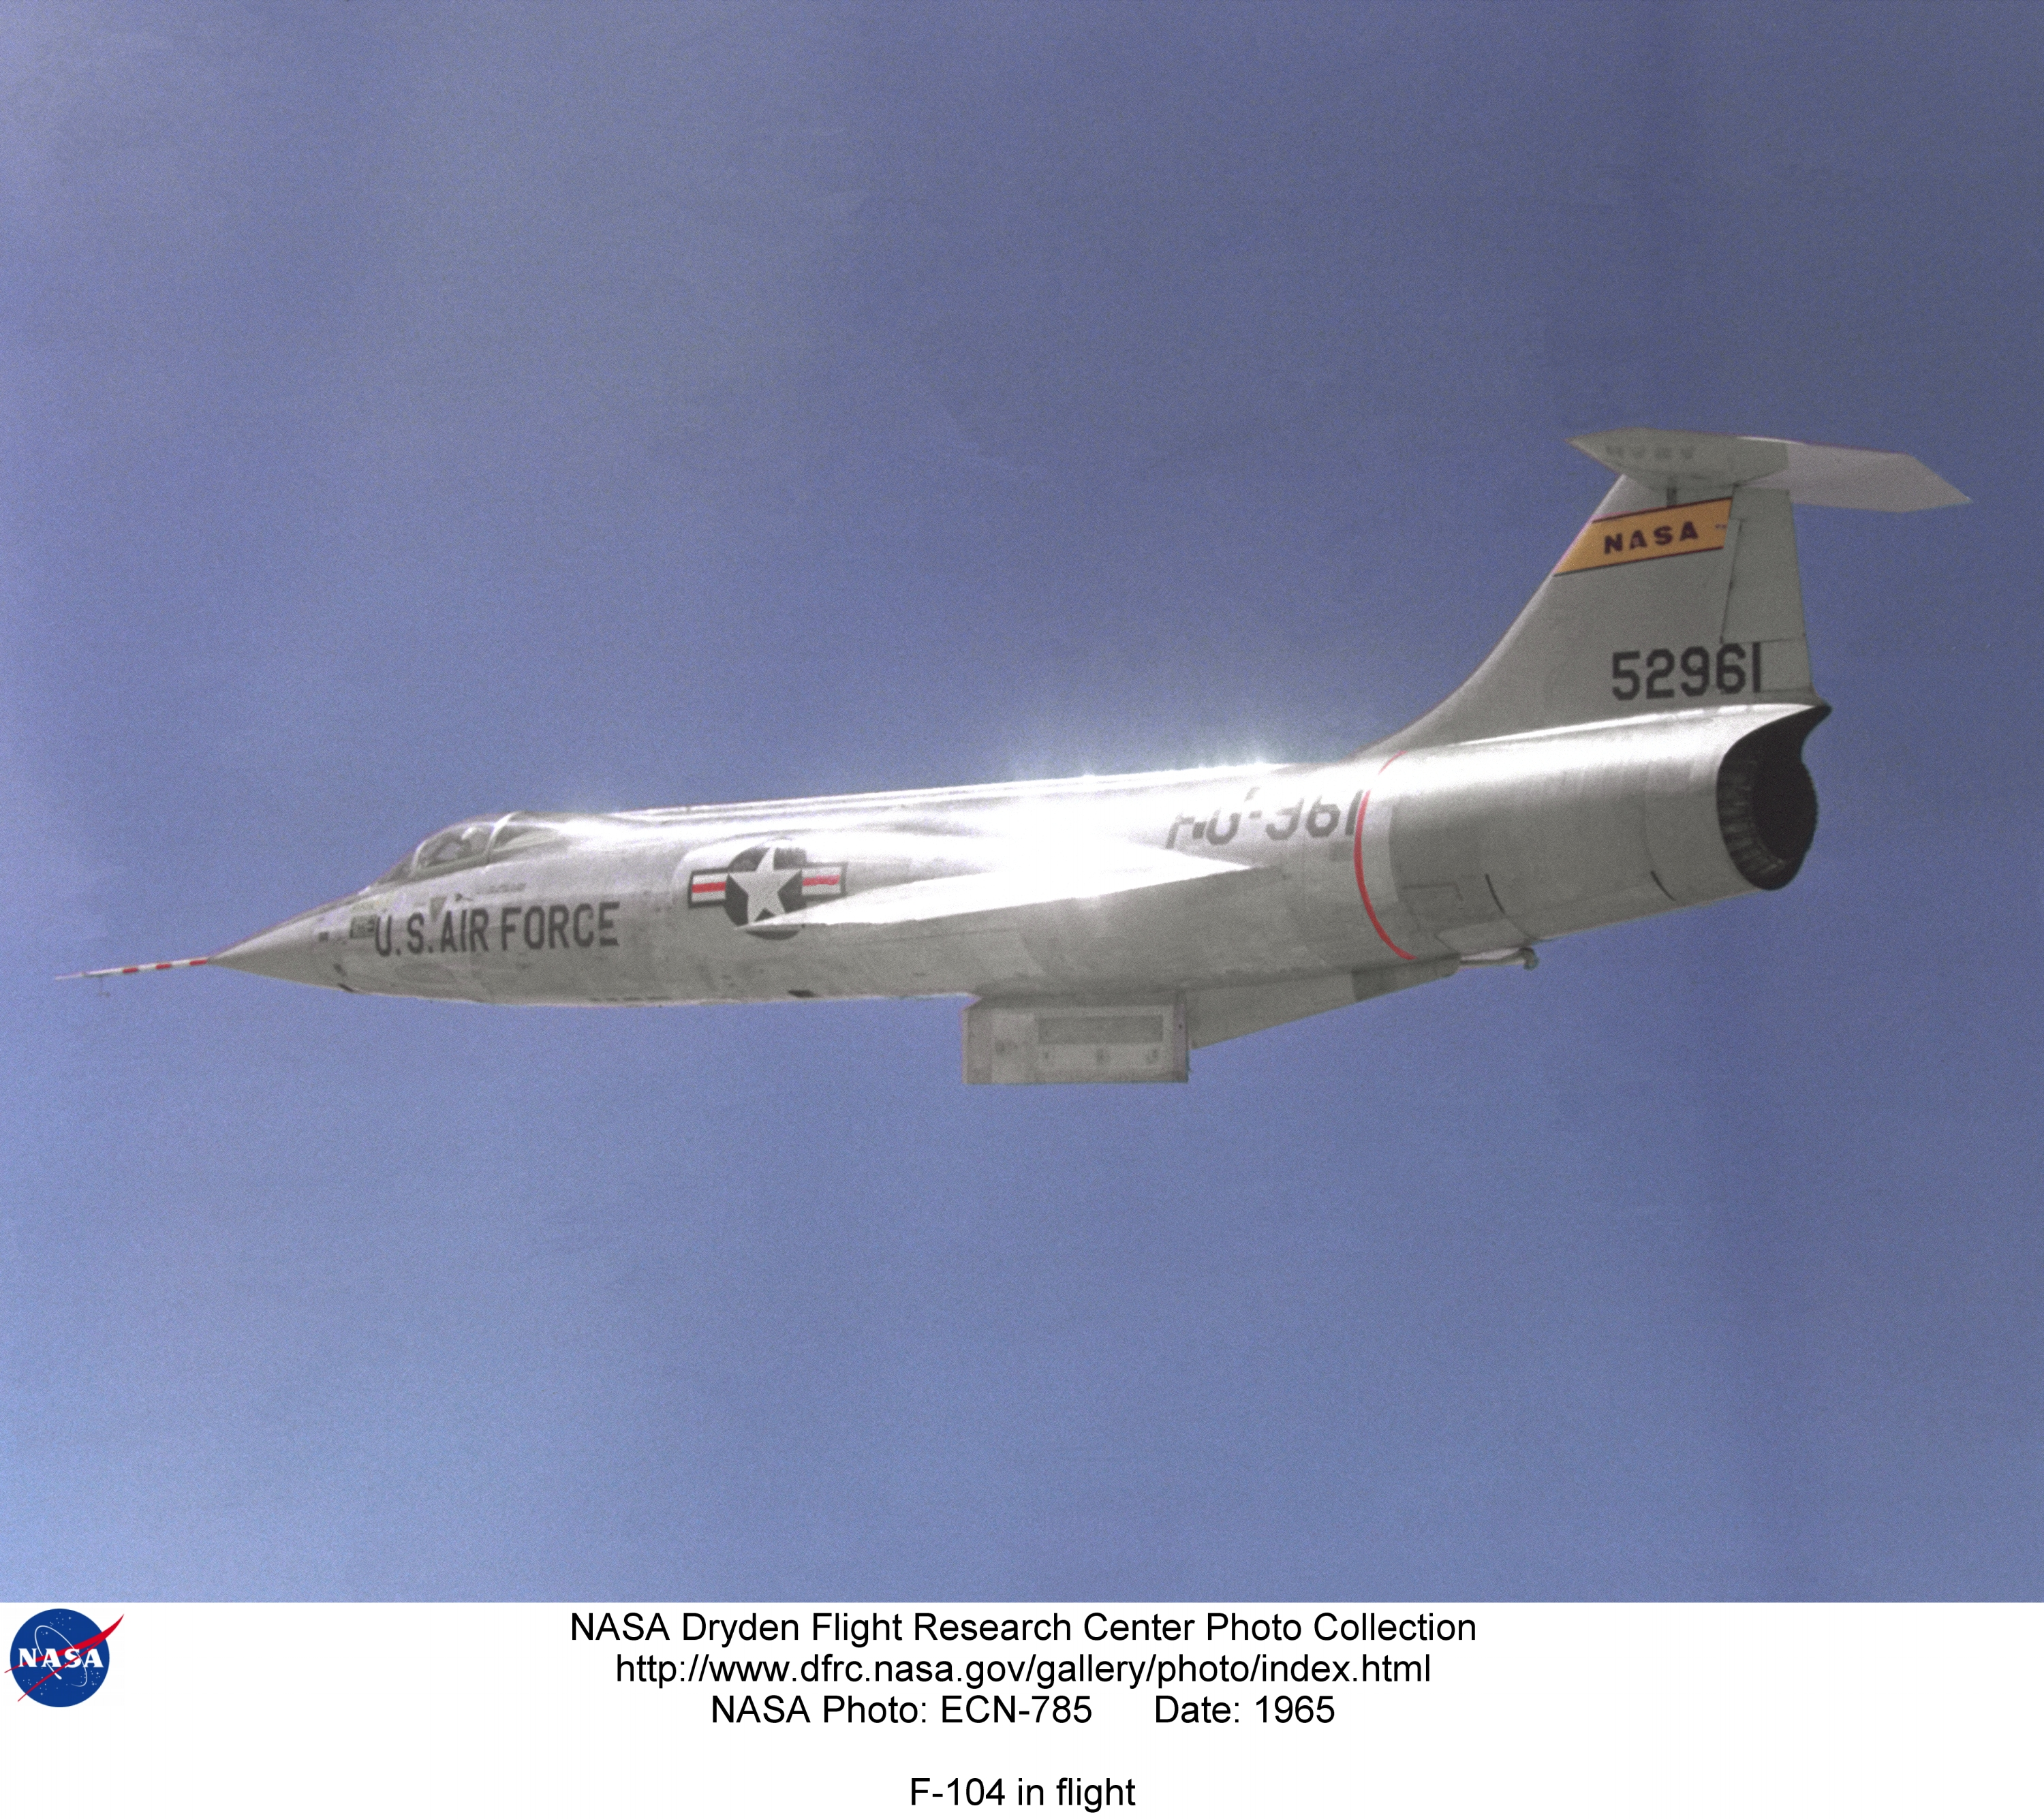 f 104 nasa dryden test fleet - photo #36